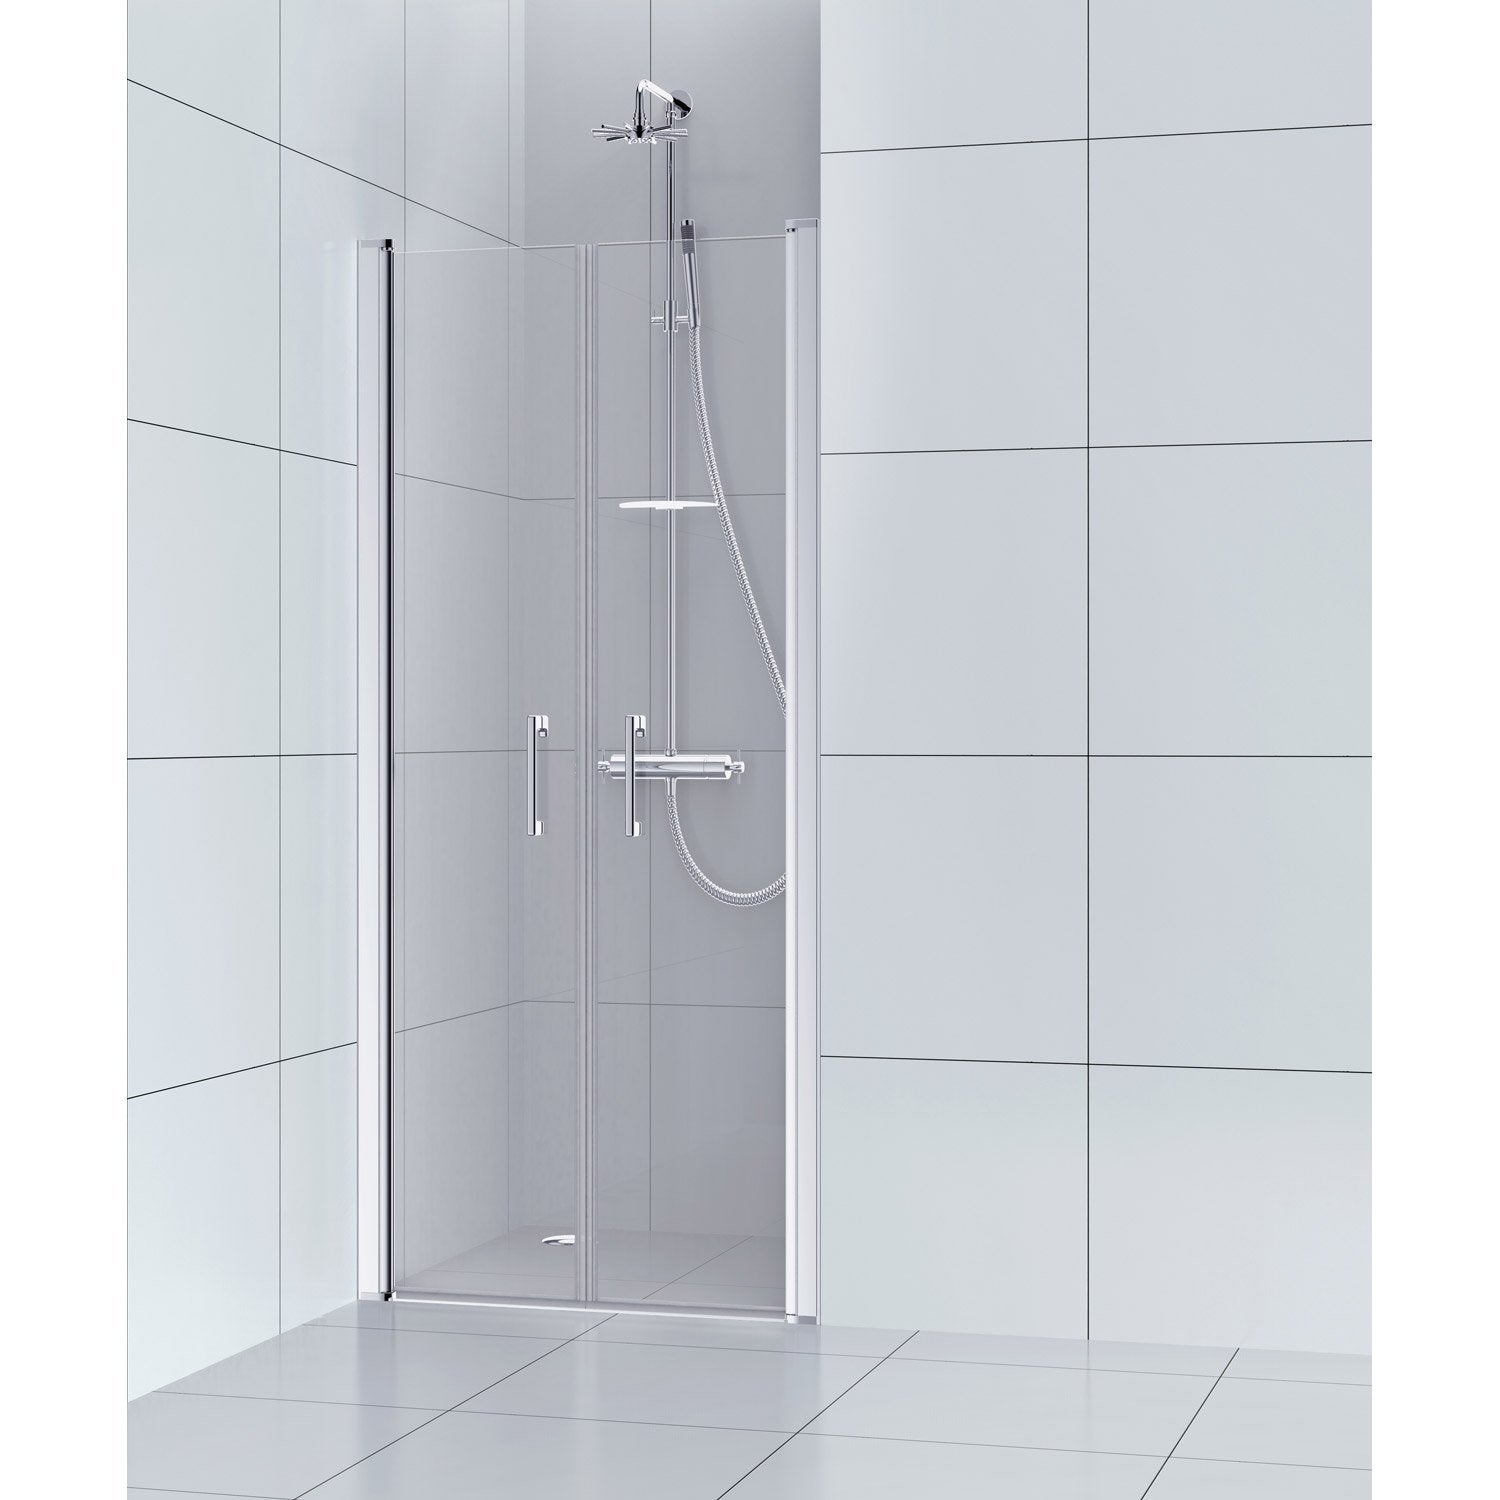 Porte de douche battante 80 cm transparent remix leroy for Porte douche coulissante 80 cm